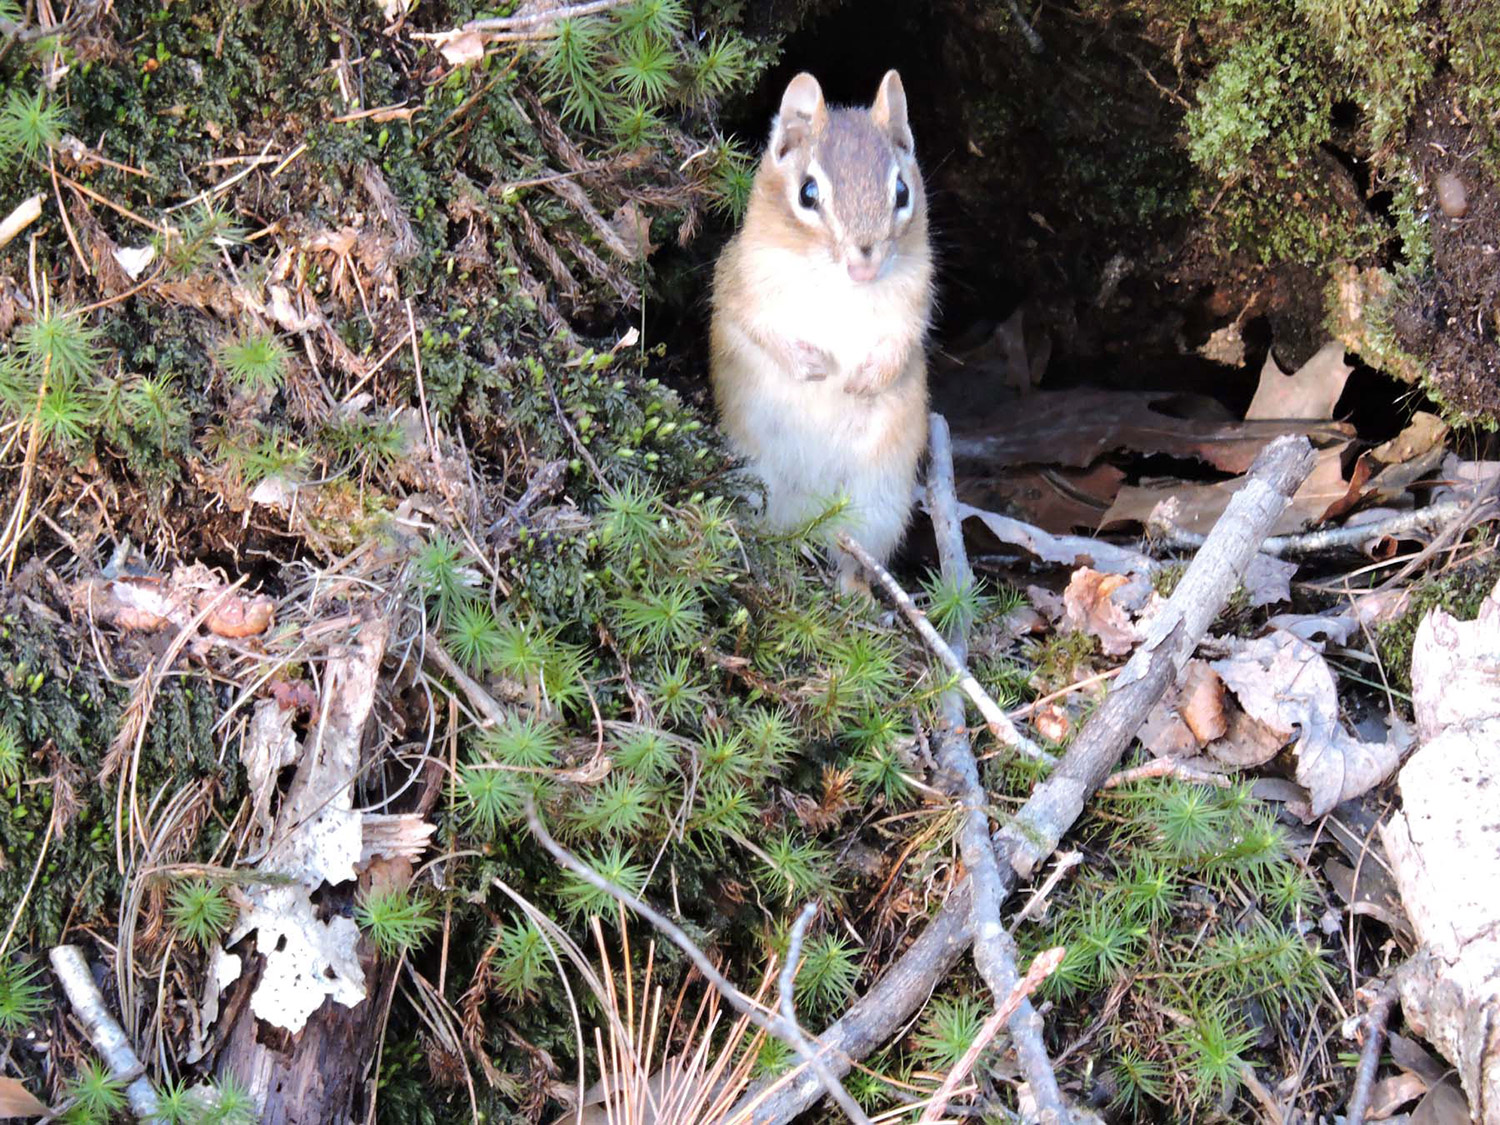 As long as that eagle stays in Clinton, this chipmunk should be safe on Kennebunk's Bridal Path. By resident Kristen Holmberg, a frequent contributor to Your Turn.